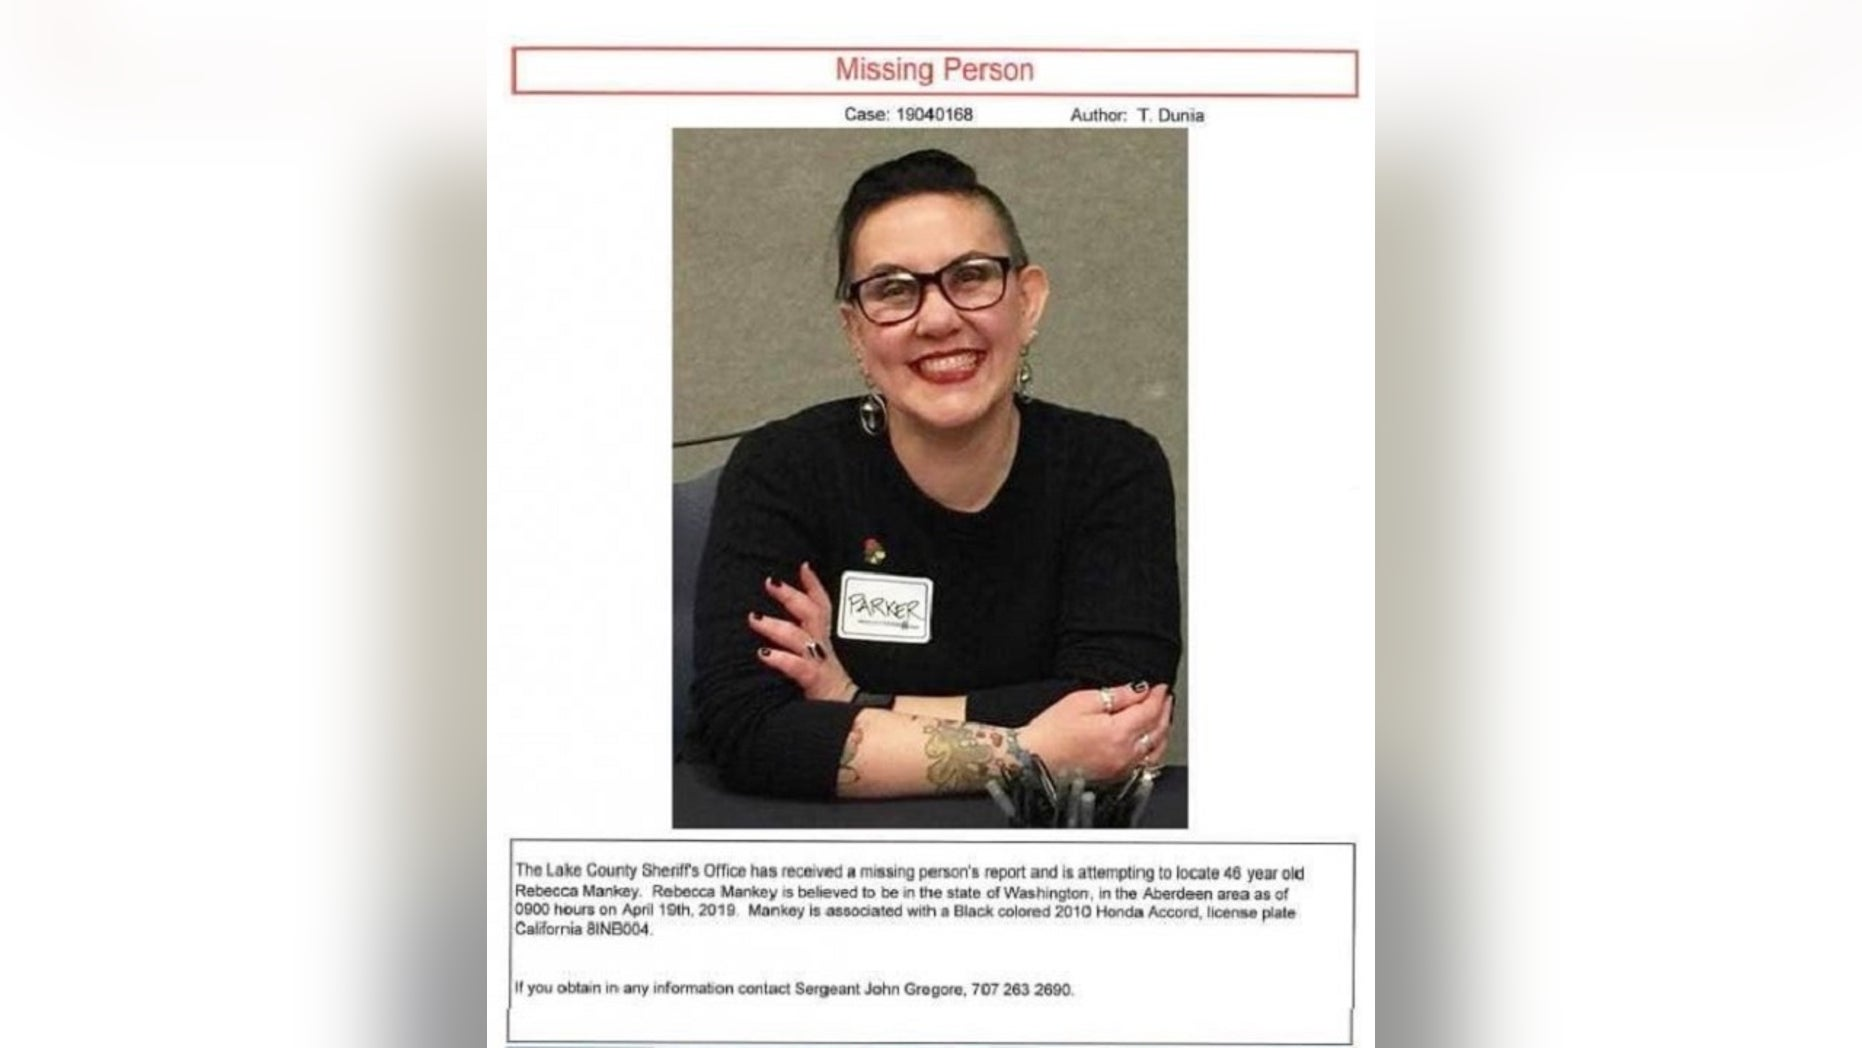 Rebecca Parker Mankey was reported missing after leaving Lake County, where she visited a friend on April 18.